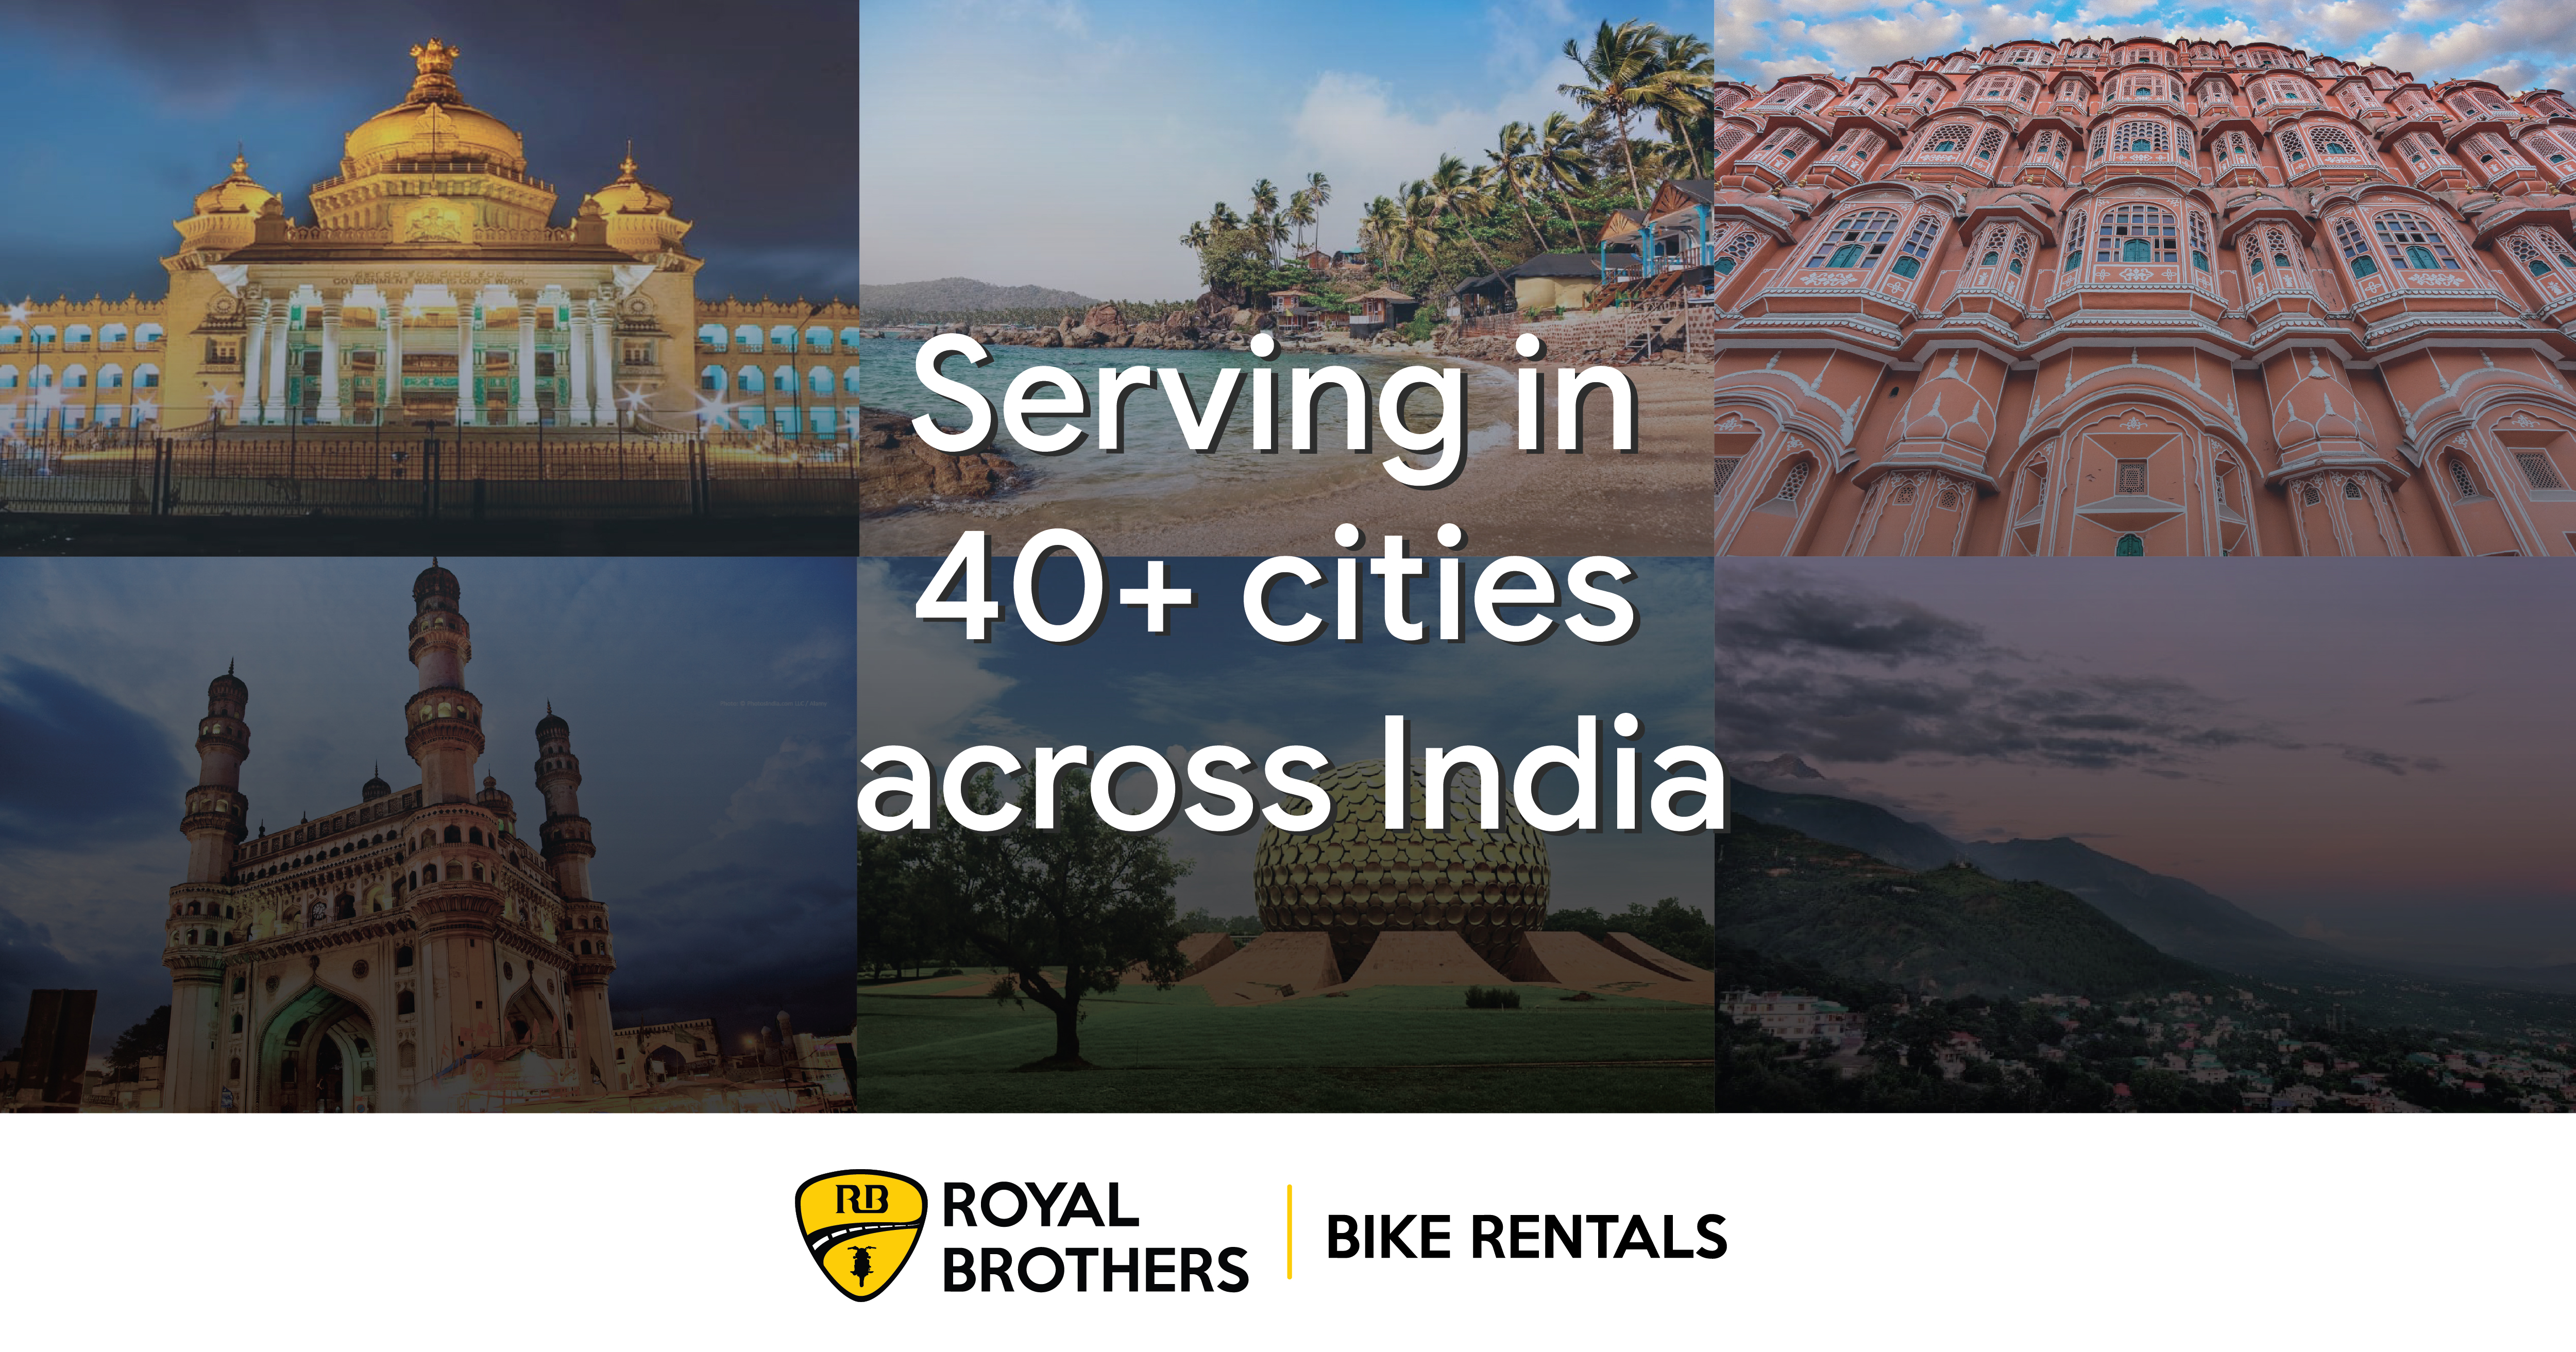 Bike Rentals | Two Wheelers for Rent | Royal Brothers